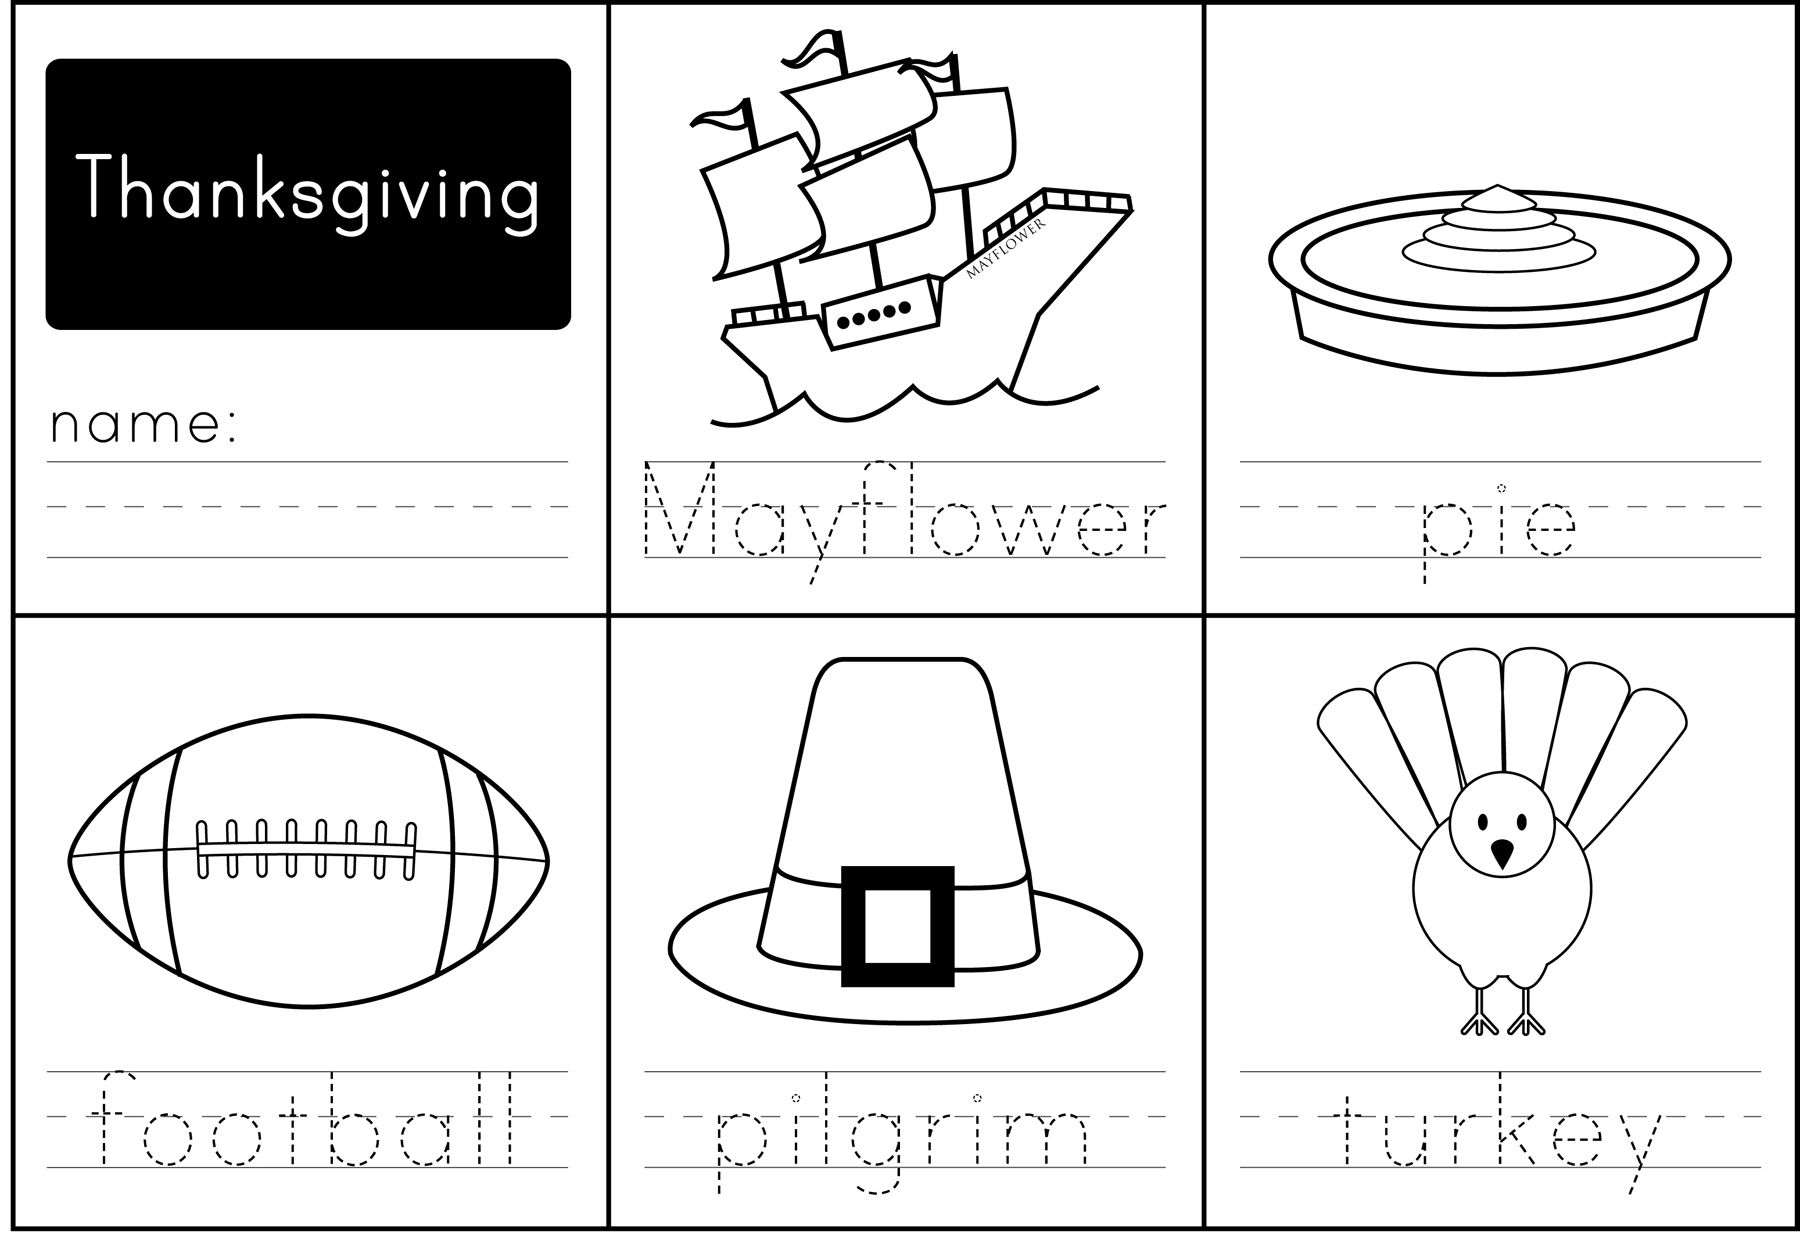 Thanksgiving Words :: All new worksheet for your little ones to practice writing simple Thanksgiving